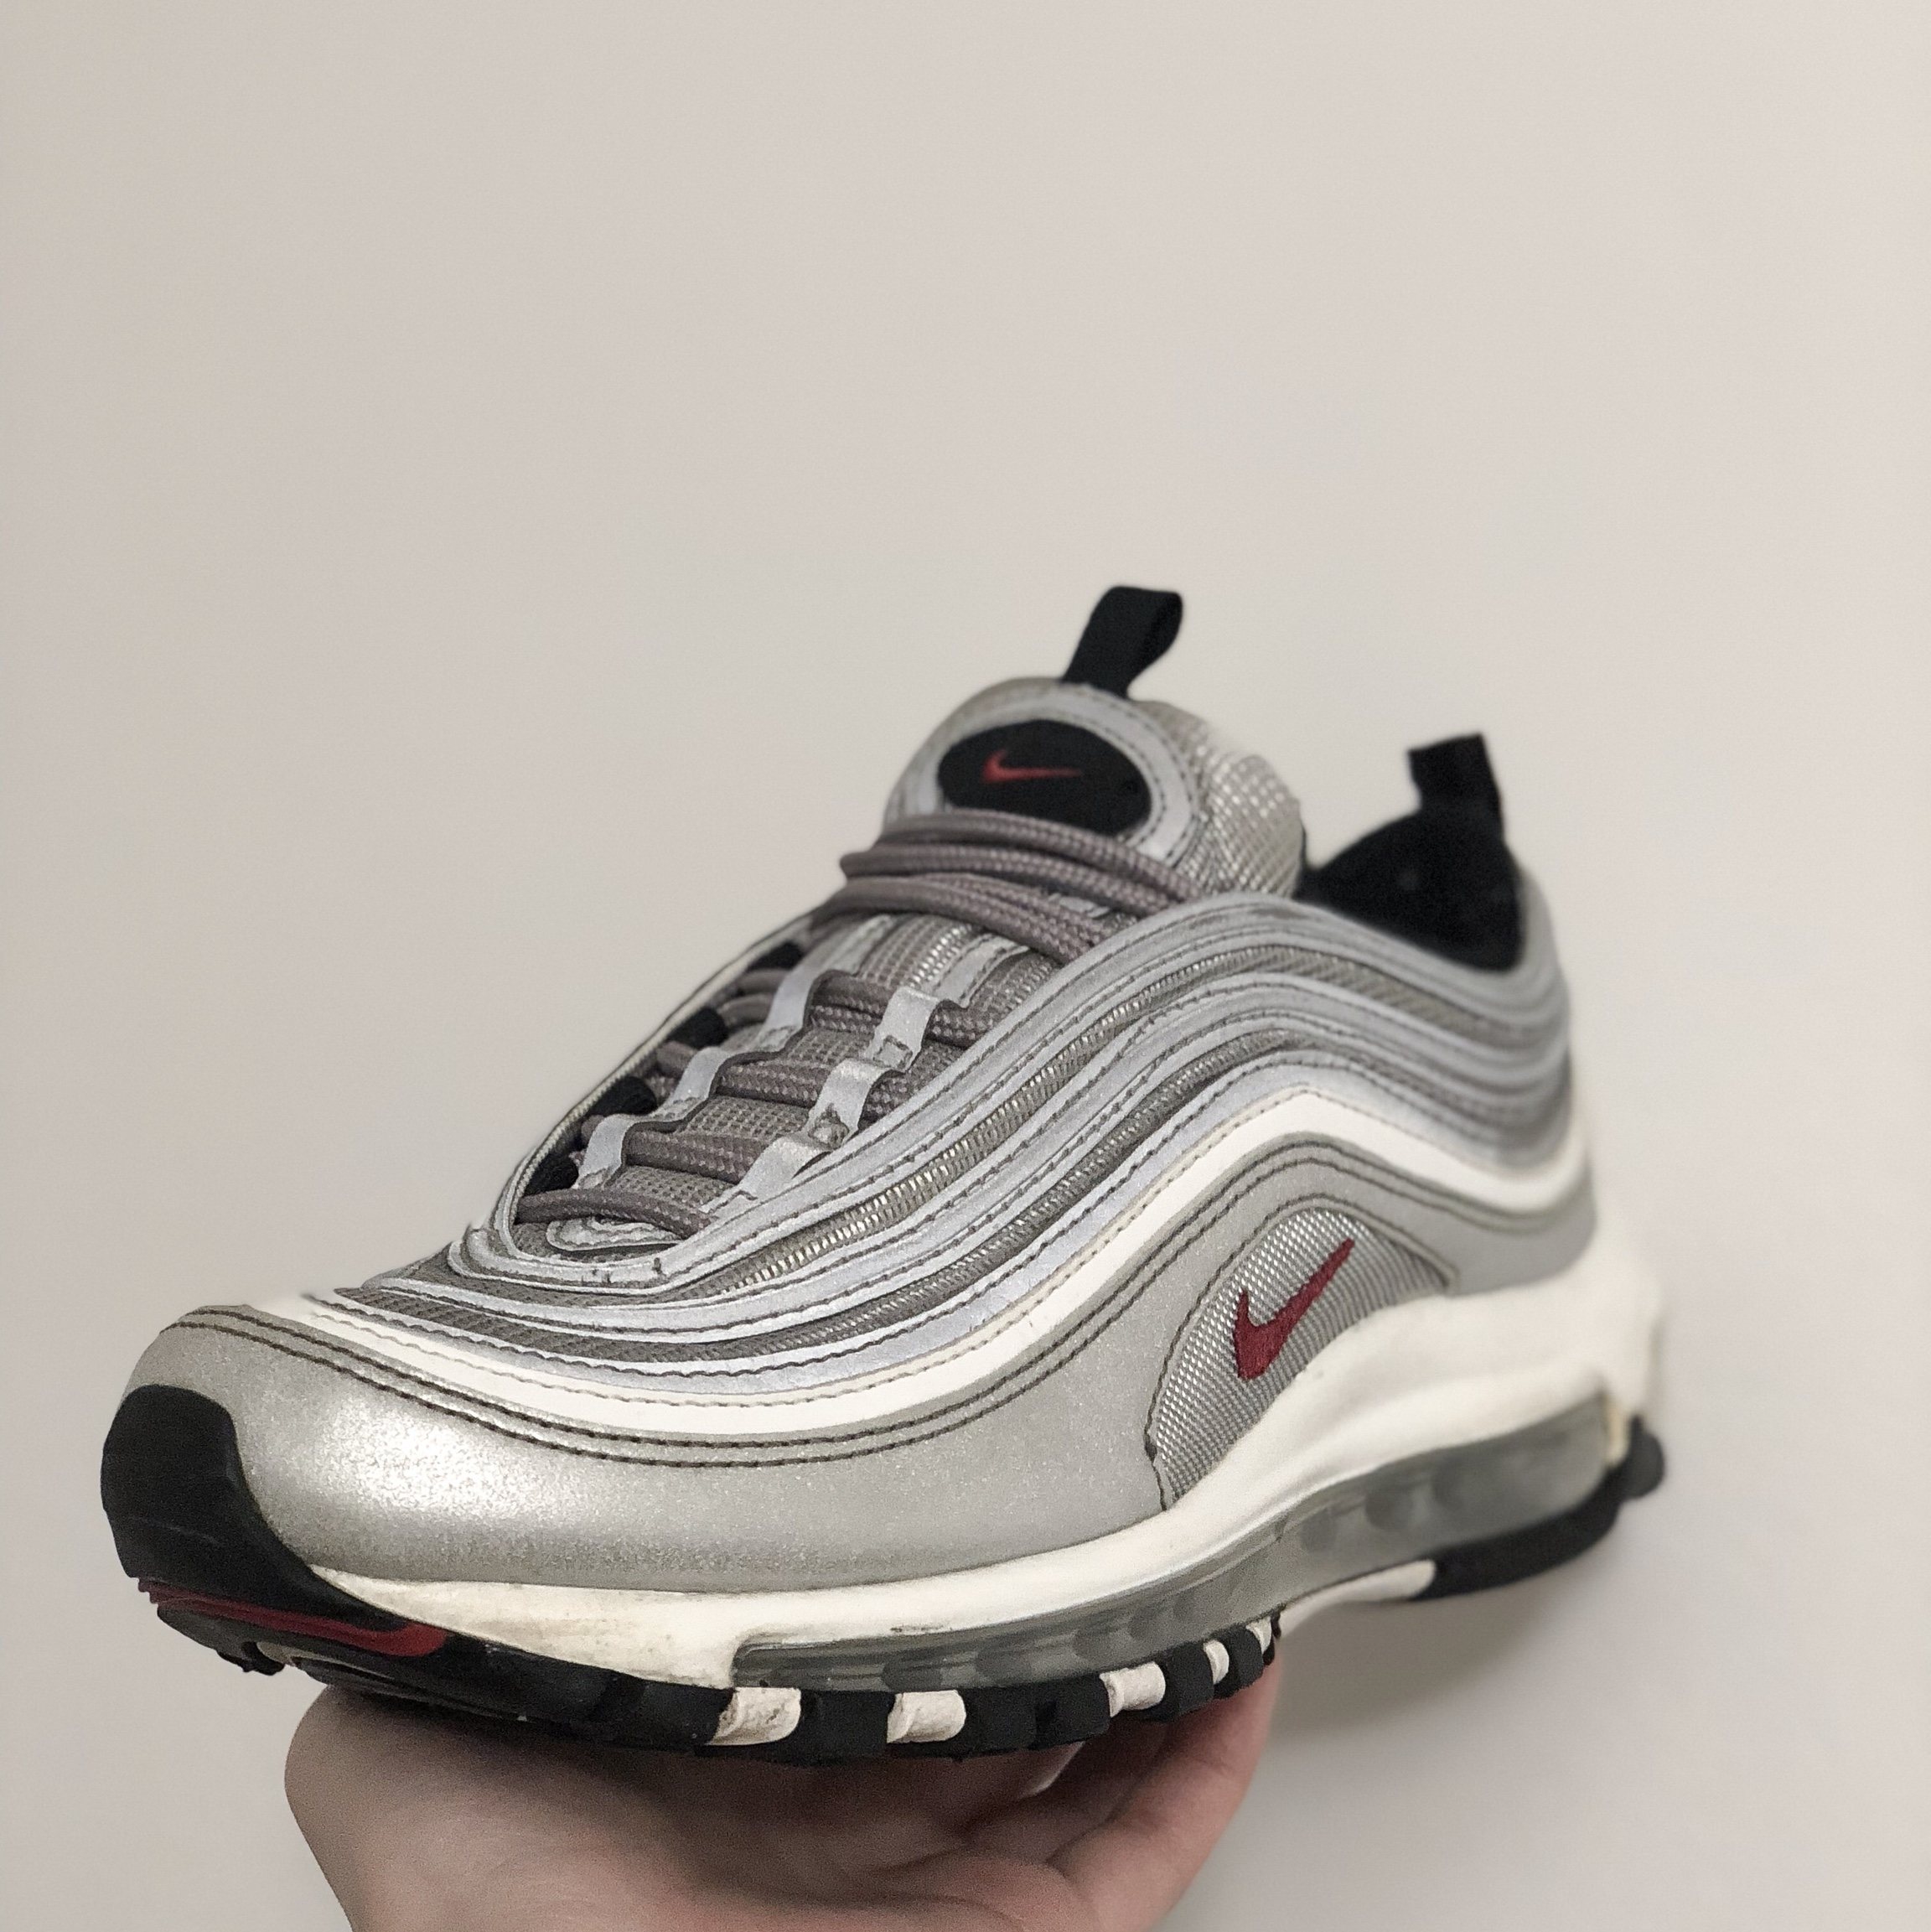 reputable site a83de 0fe26 Nike Air Max 97 (OG Silver Bullet) with original... - Depop